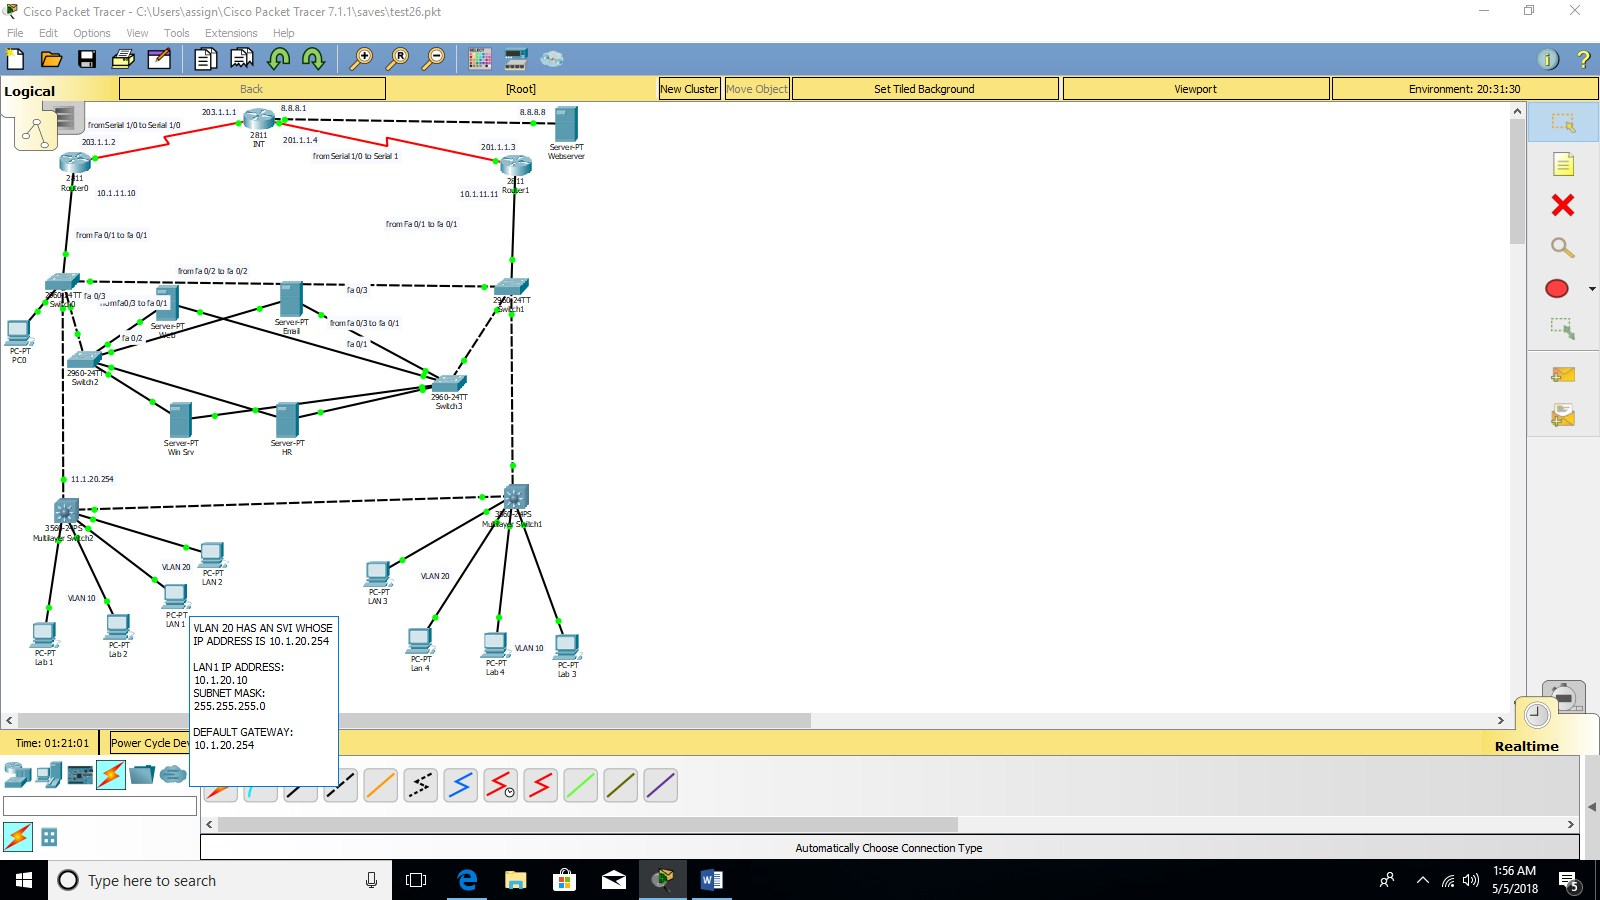 hight resolution of i am trying to ping from a pc lan 1 to a webserver having ip address 8 8 8 8 the pc lan 1 is a vlan 20 having ip address 10 1 20 10 subnet mask